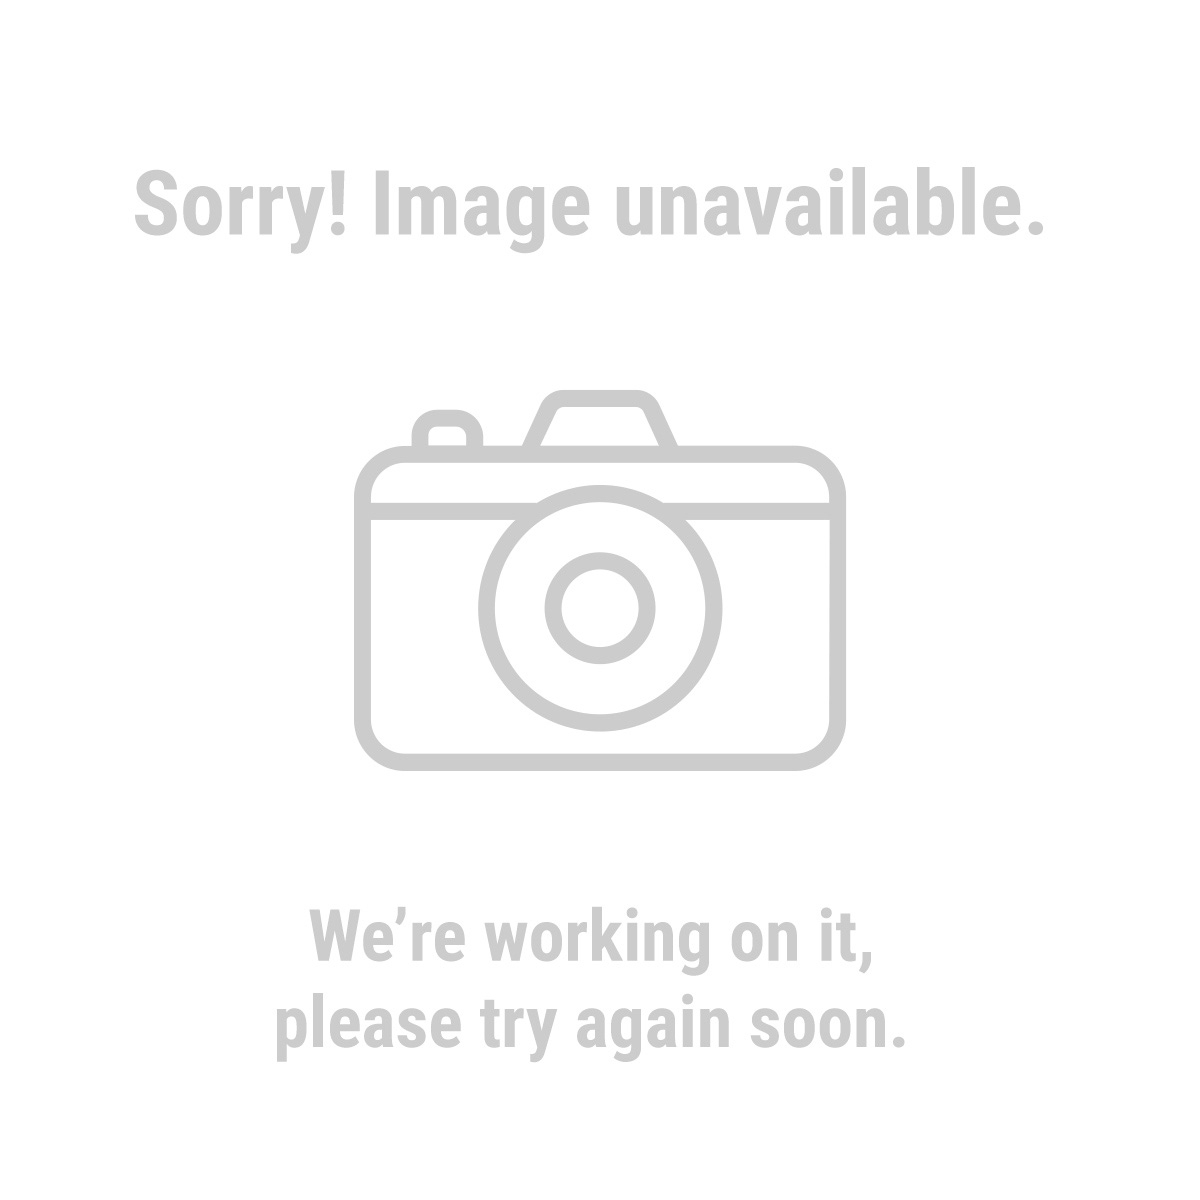 HFT 61765 9 ft. 6 in. x 7 ft. 4 in. Camouflage All Purpose/Weather Resistant Tarp